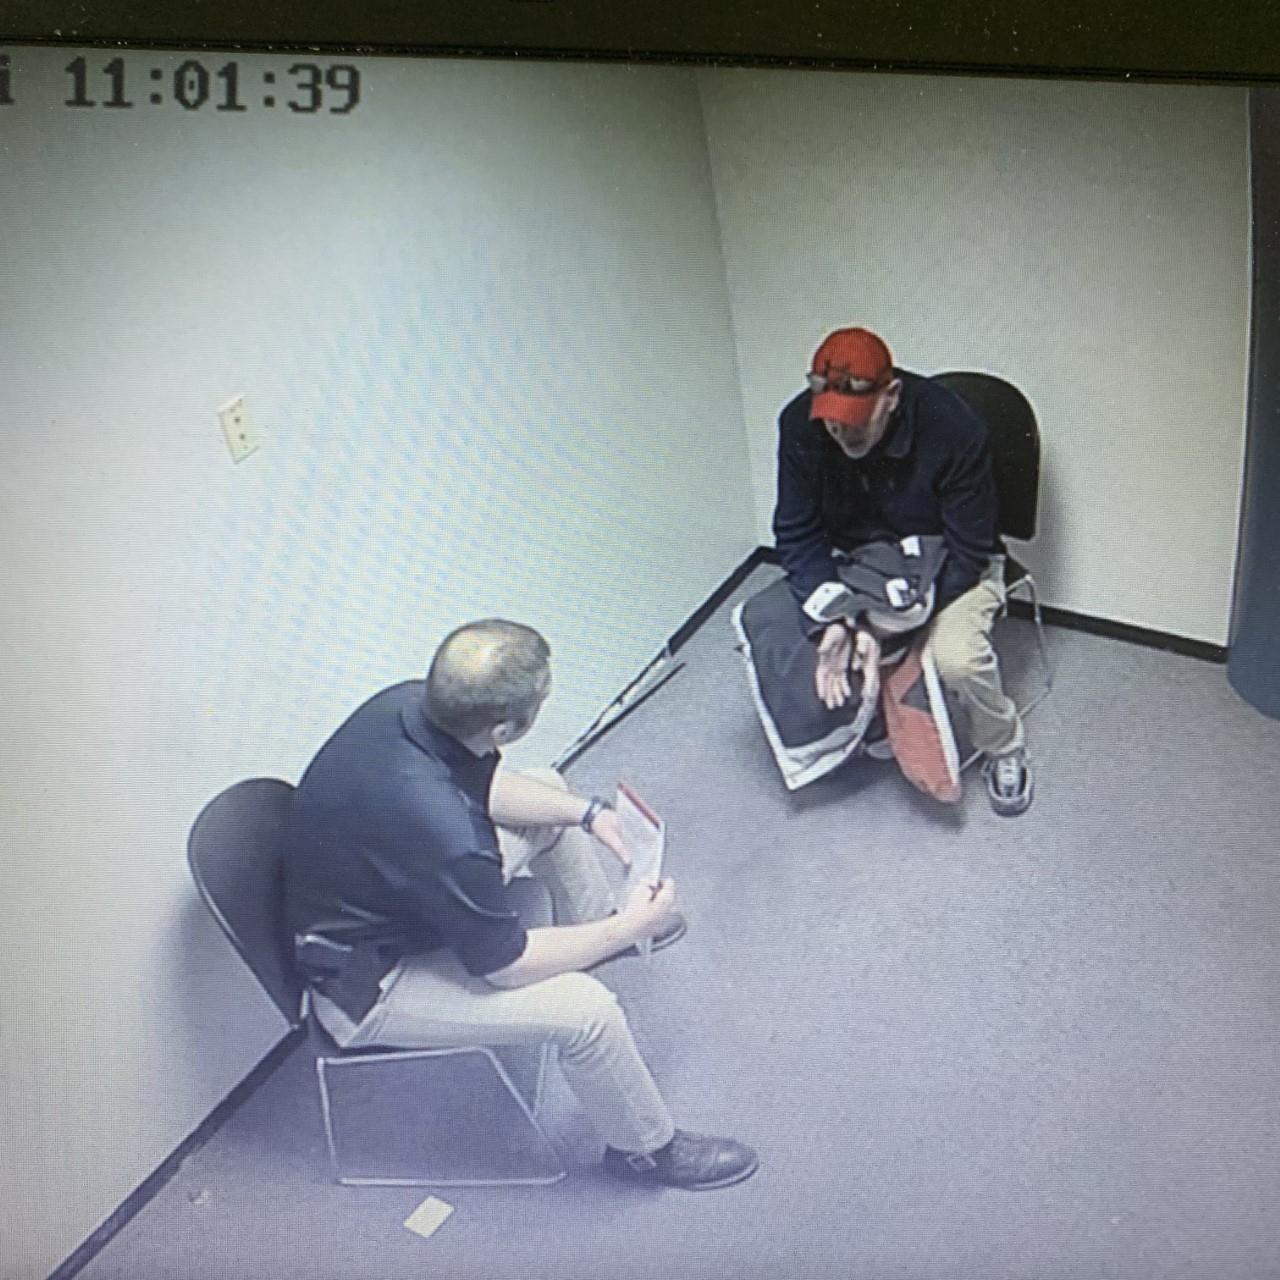 Middletown Police Detective Brook McDonald interviews Dwayne Tucker in February 2019